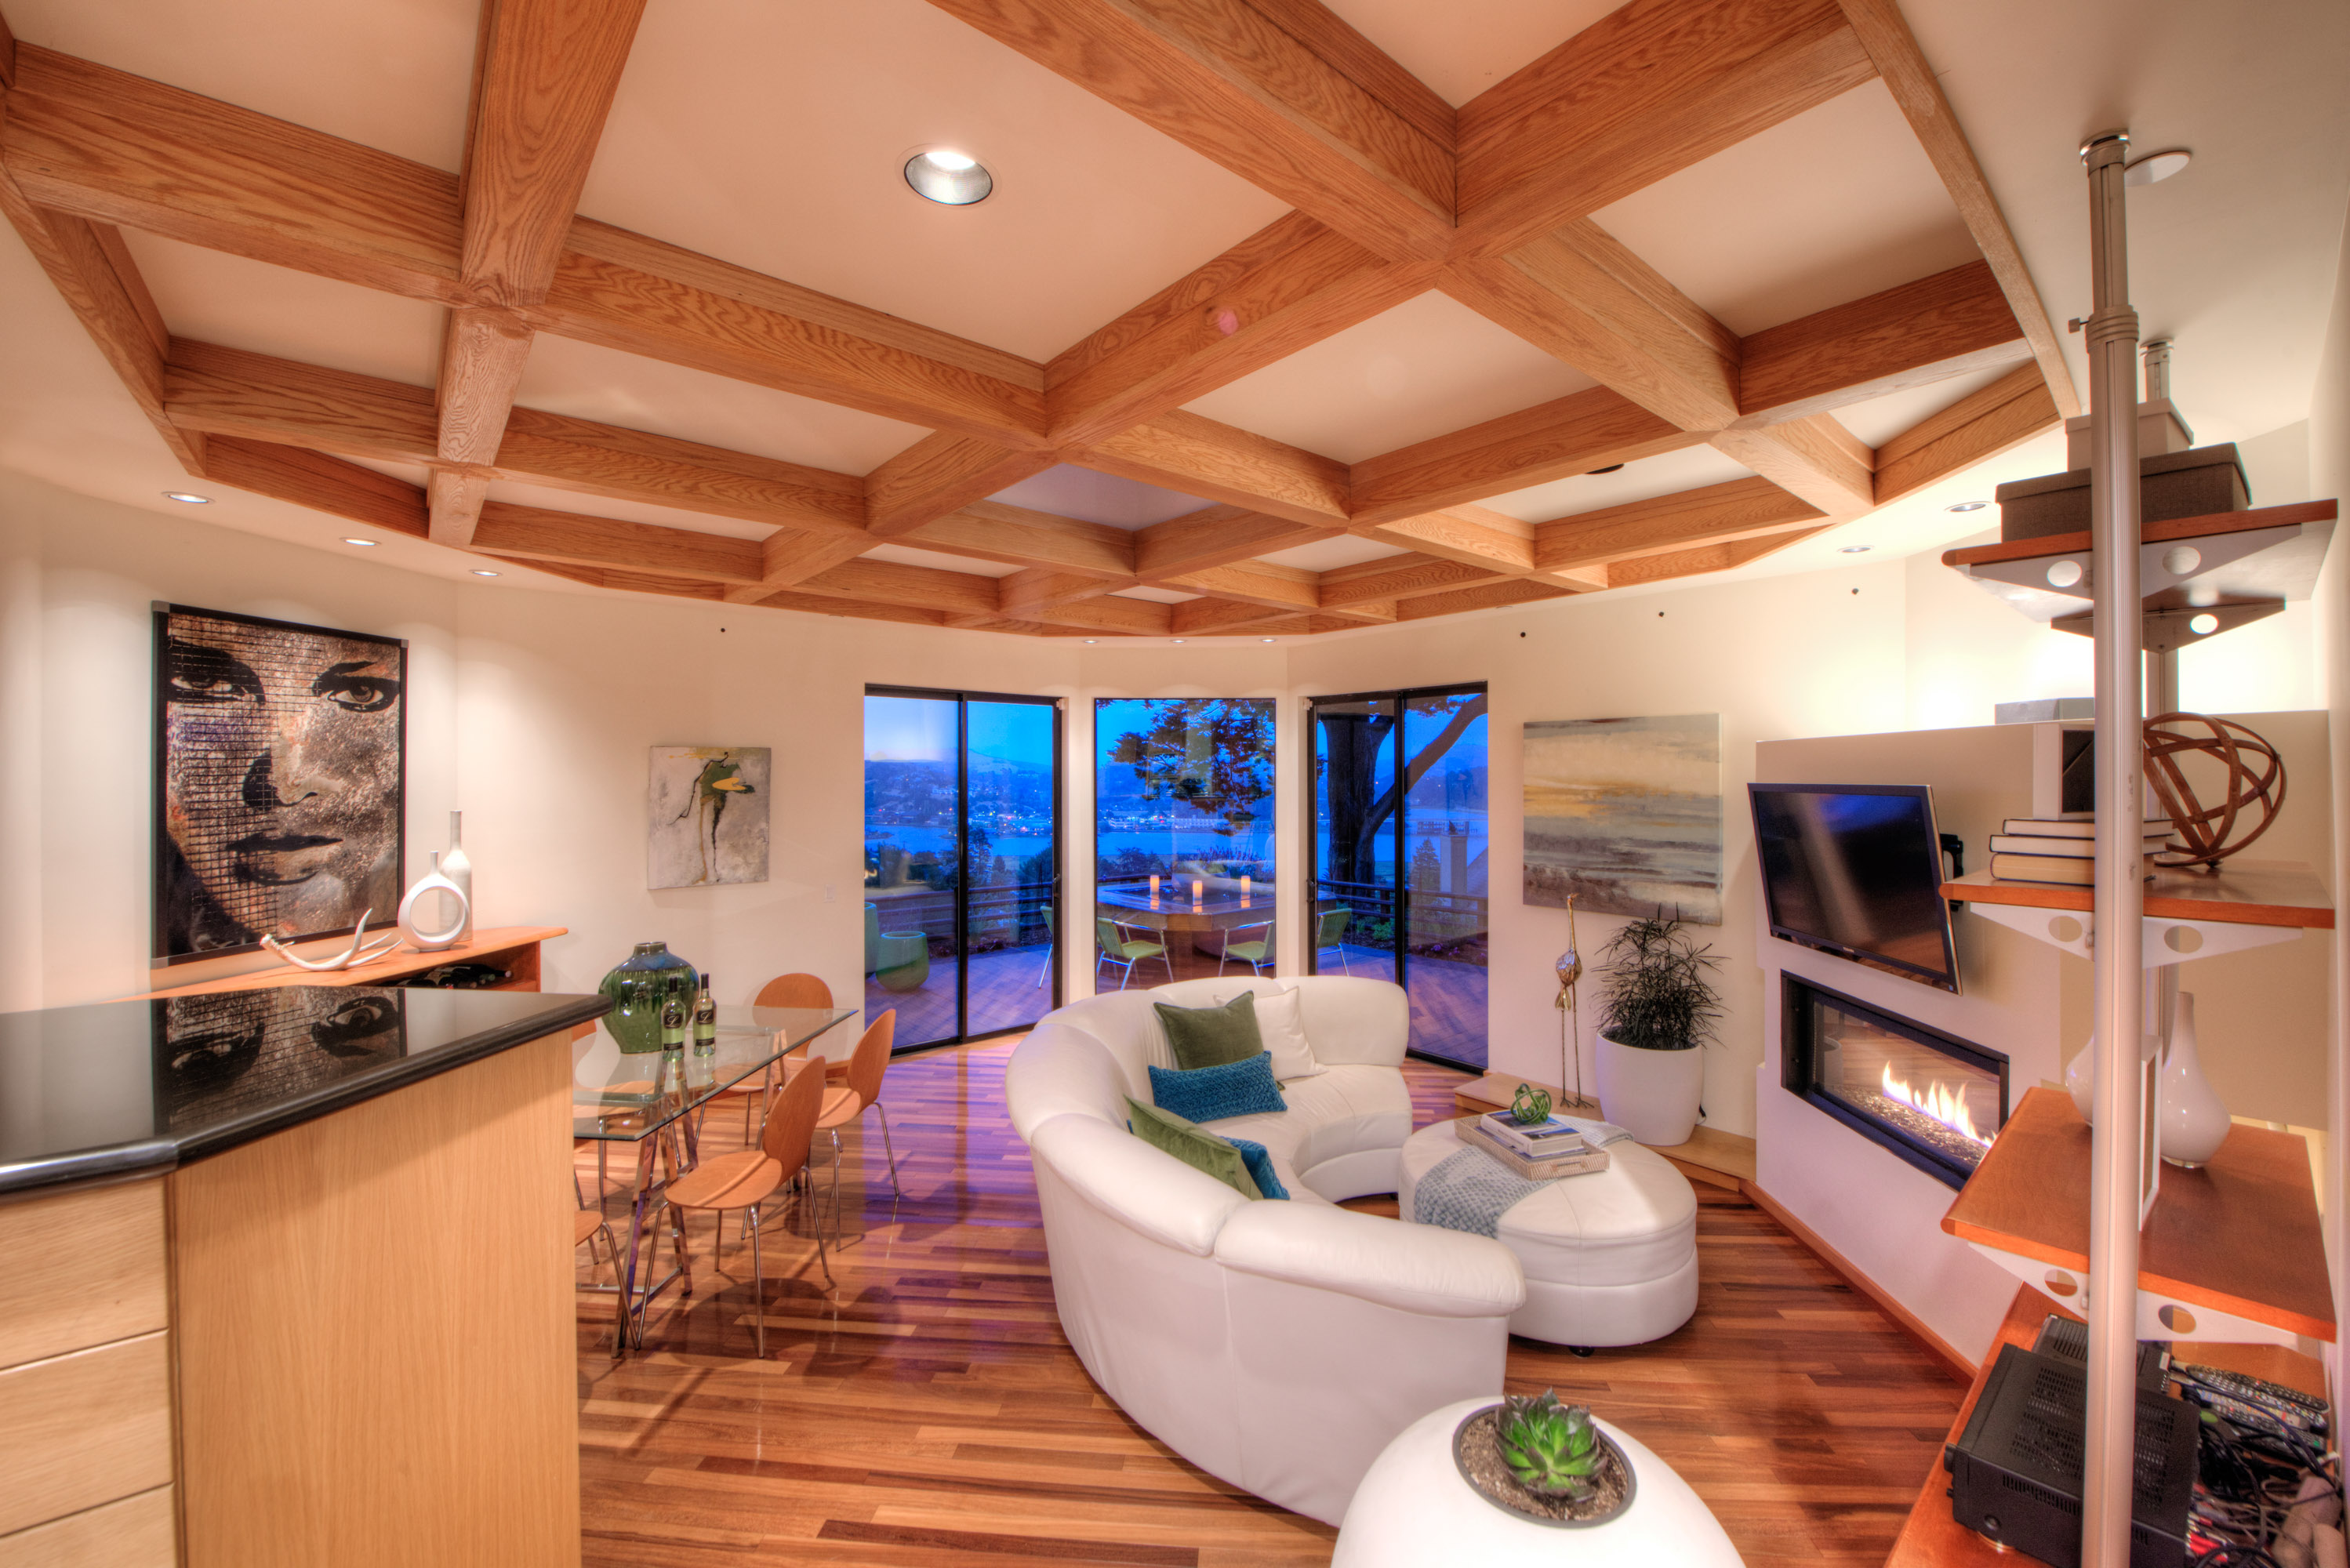 Single Family Home for Sale at The Art of Living-Zen-Like Retreat in Mill Valley 239.5 Cleveland Avenue Mill Valley, California, 94941 United States